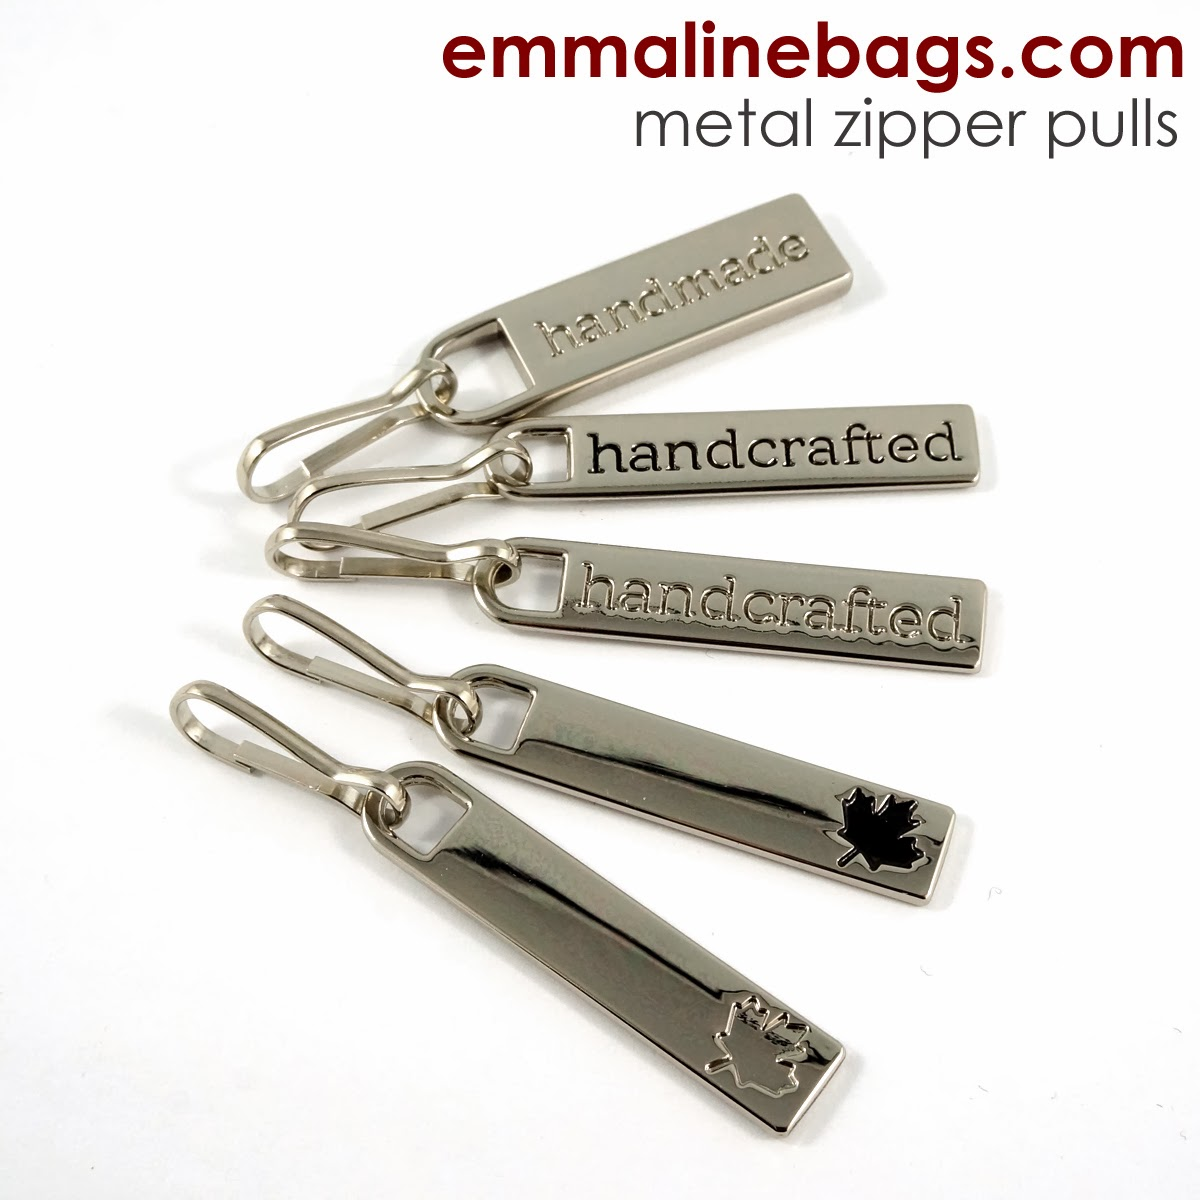 Metal zipper pulls for handmade bags